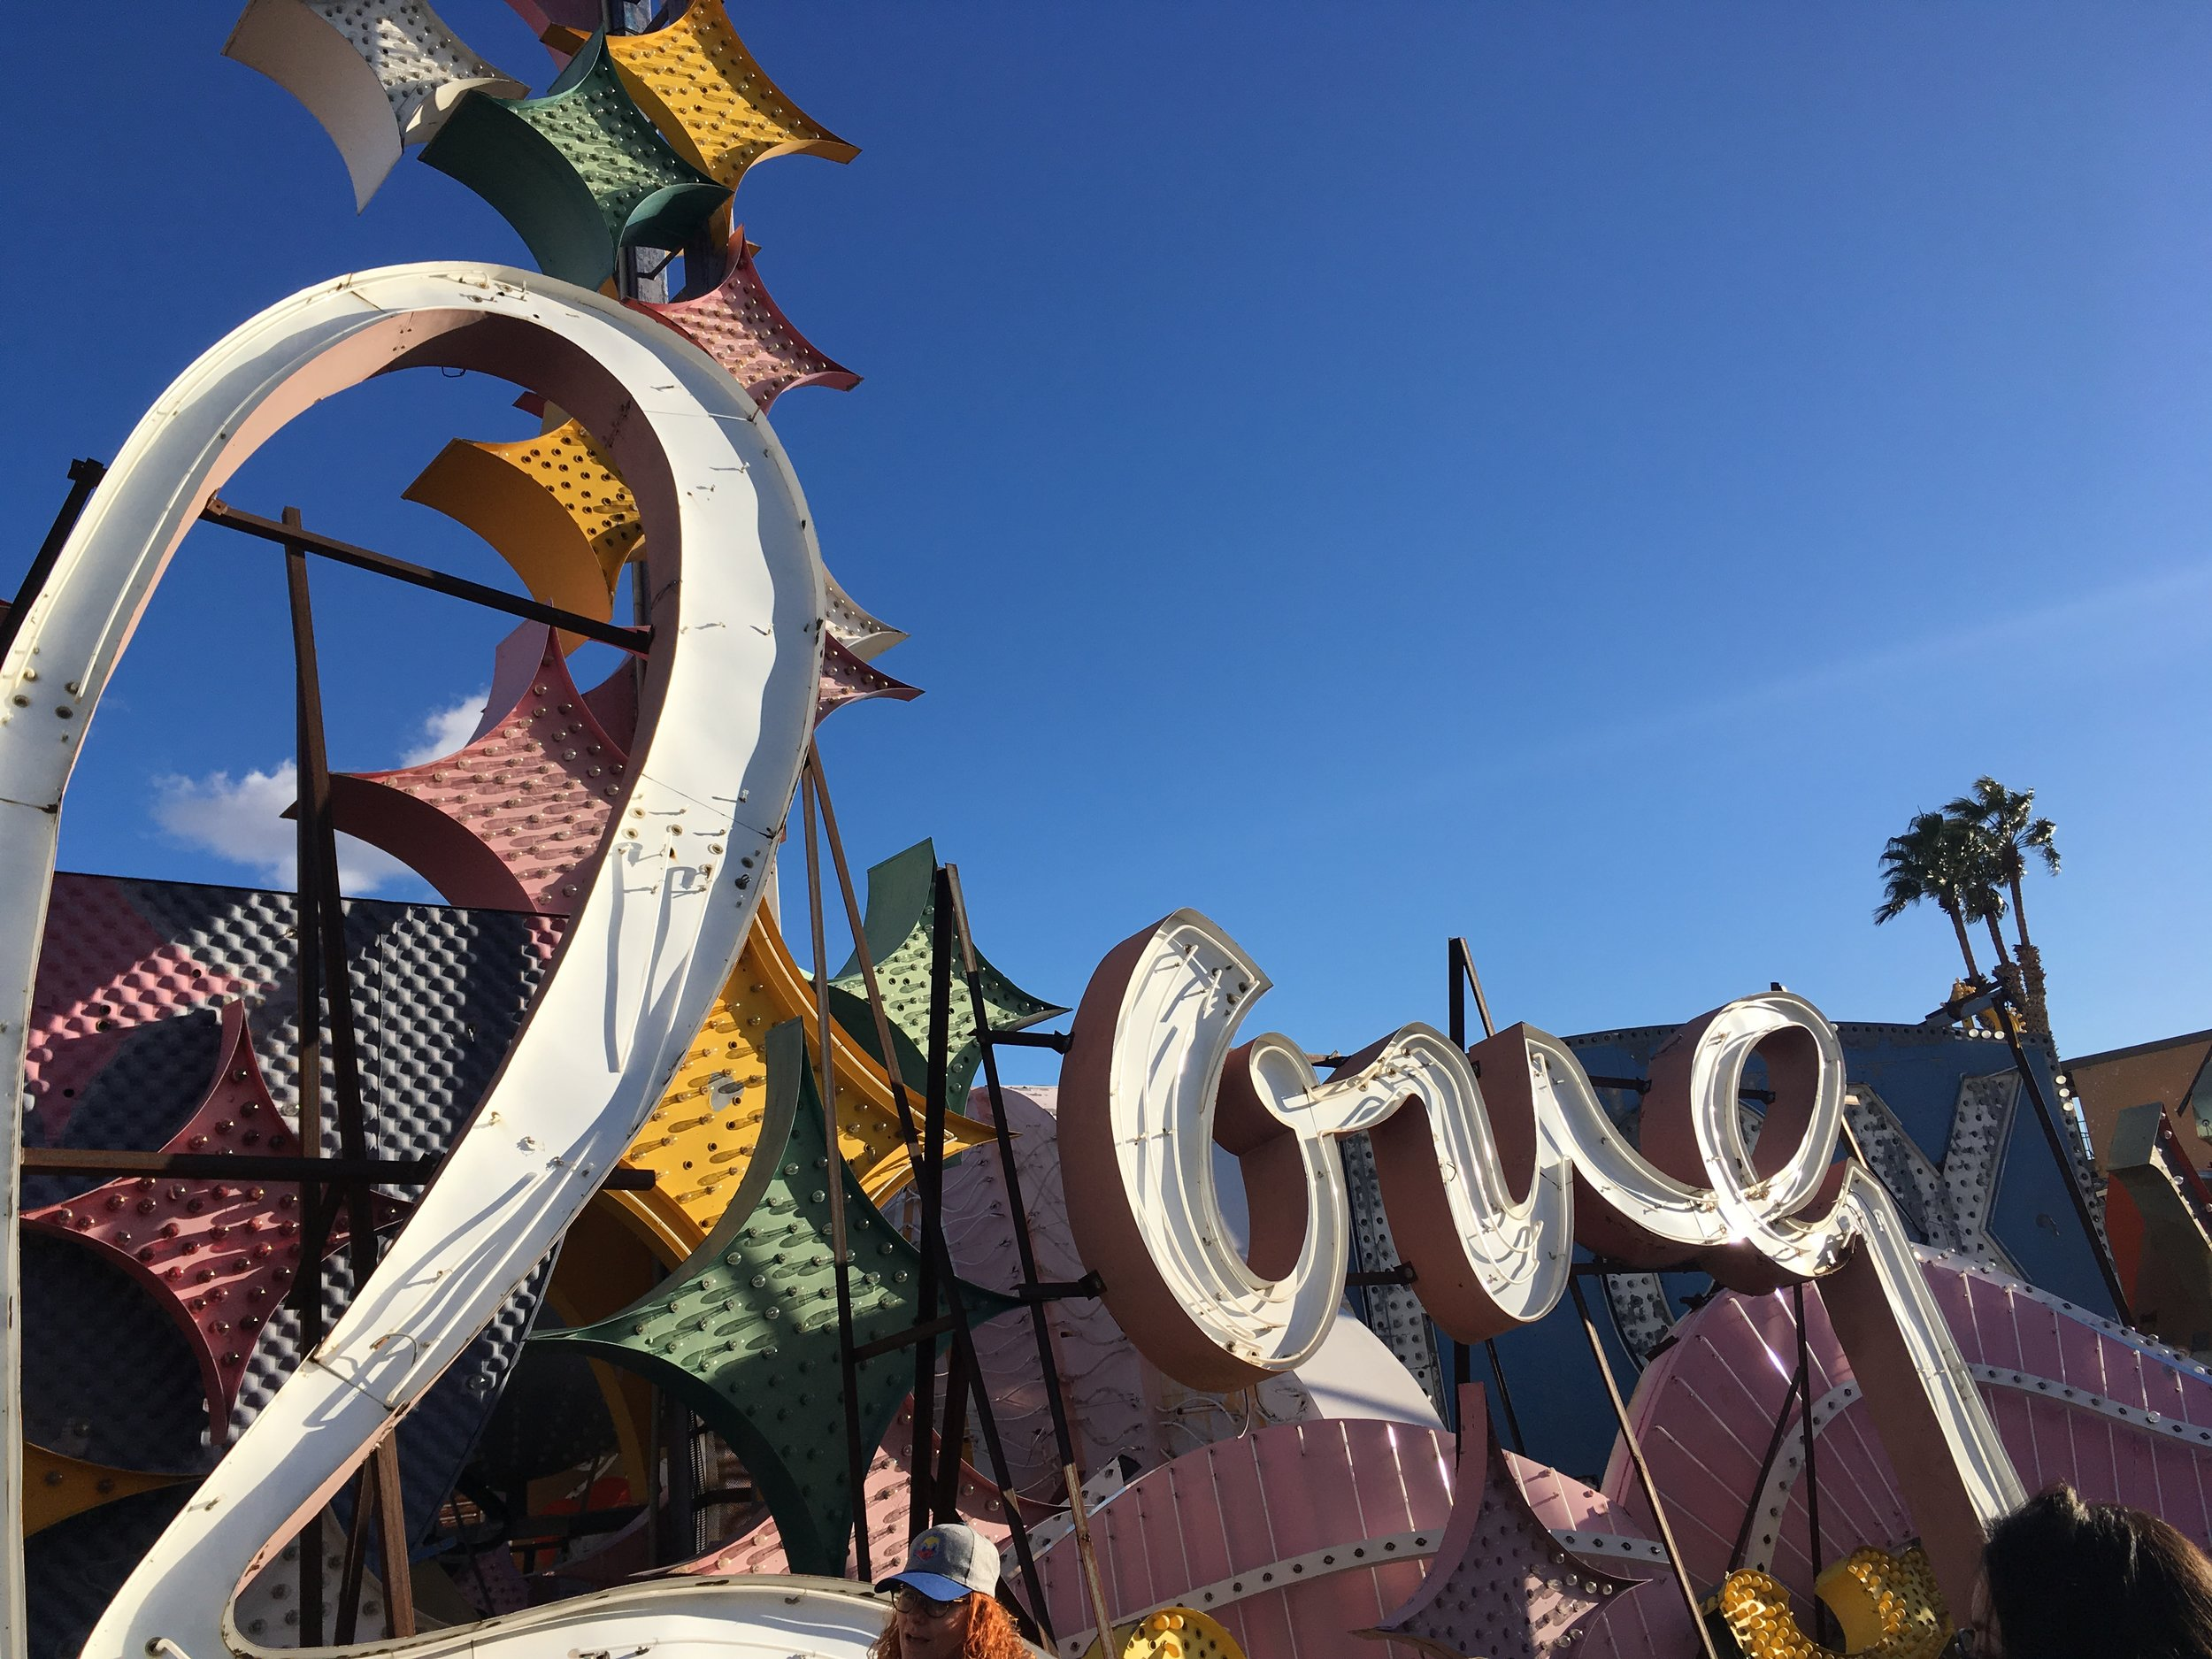 The sign from the Moulin Rouge, the hotel that paved the way to racial integration in Las Vegas. It only stayed open for something like 2 months but it was ground breaking.